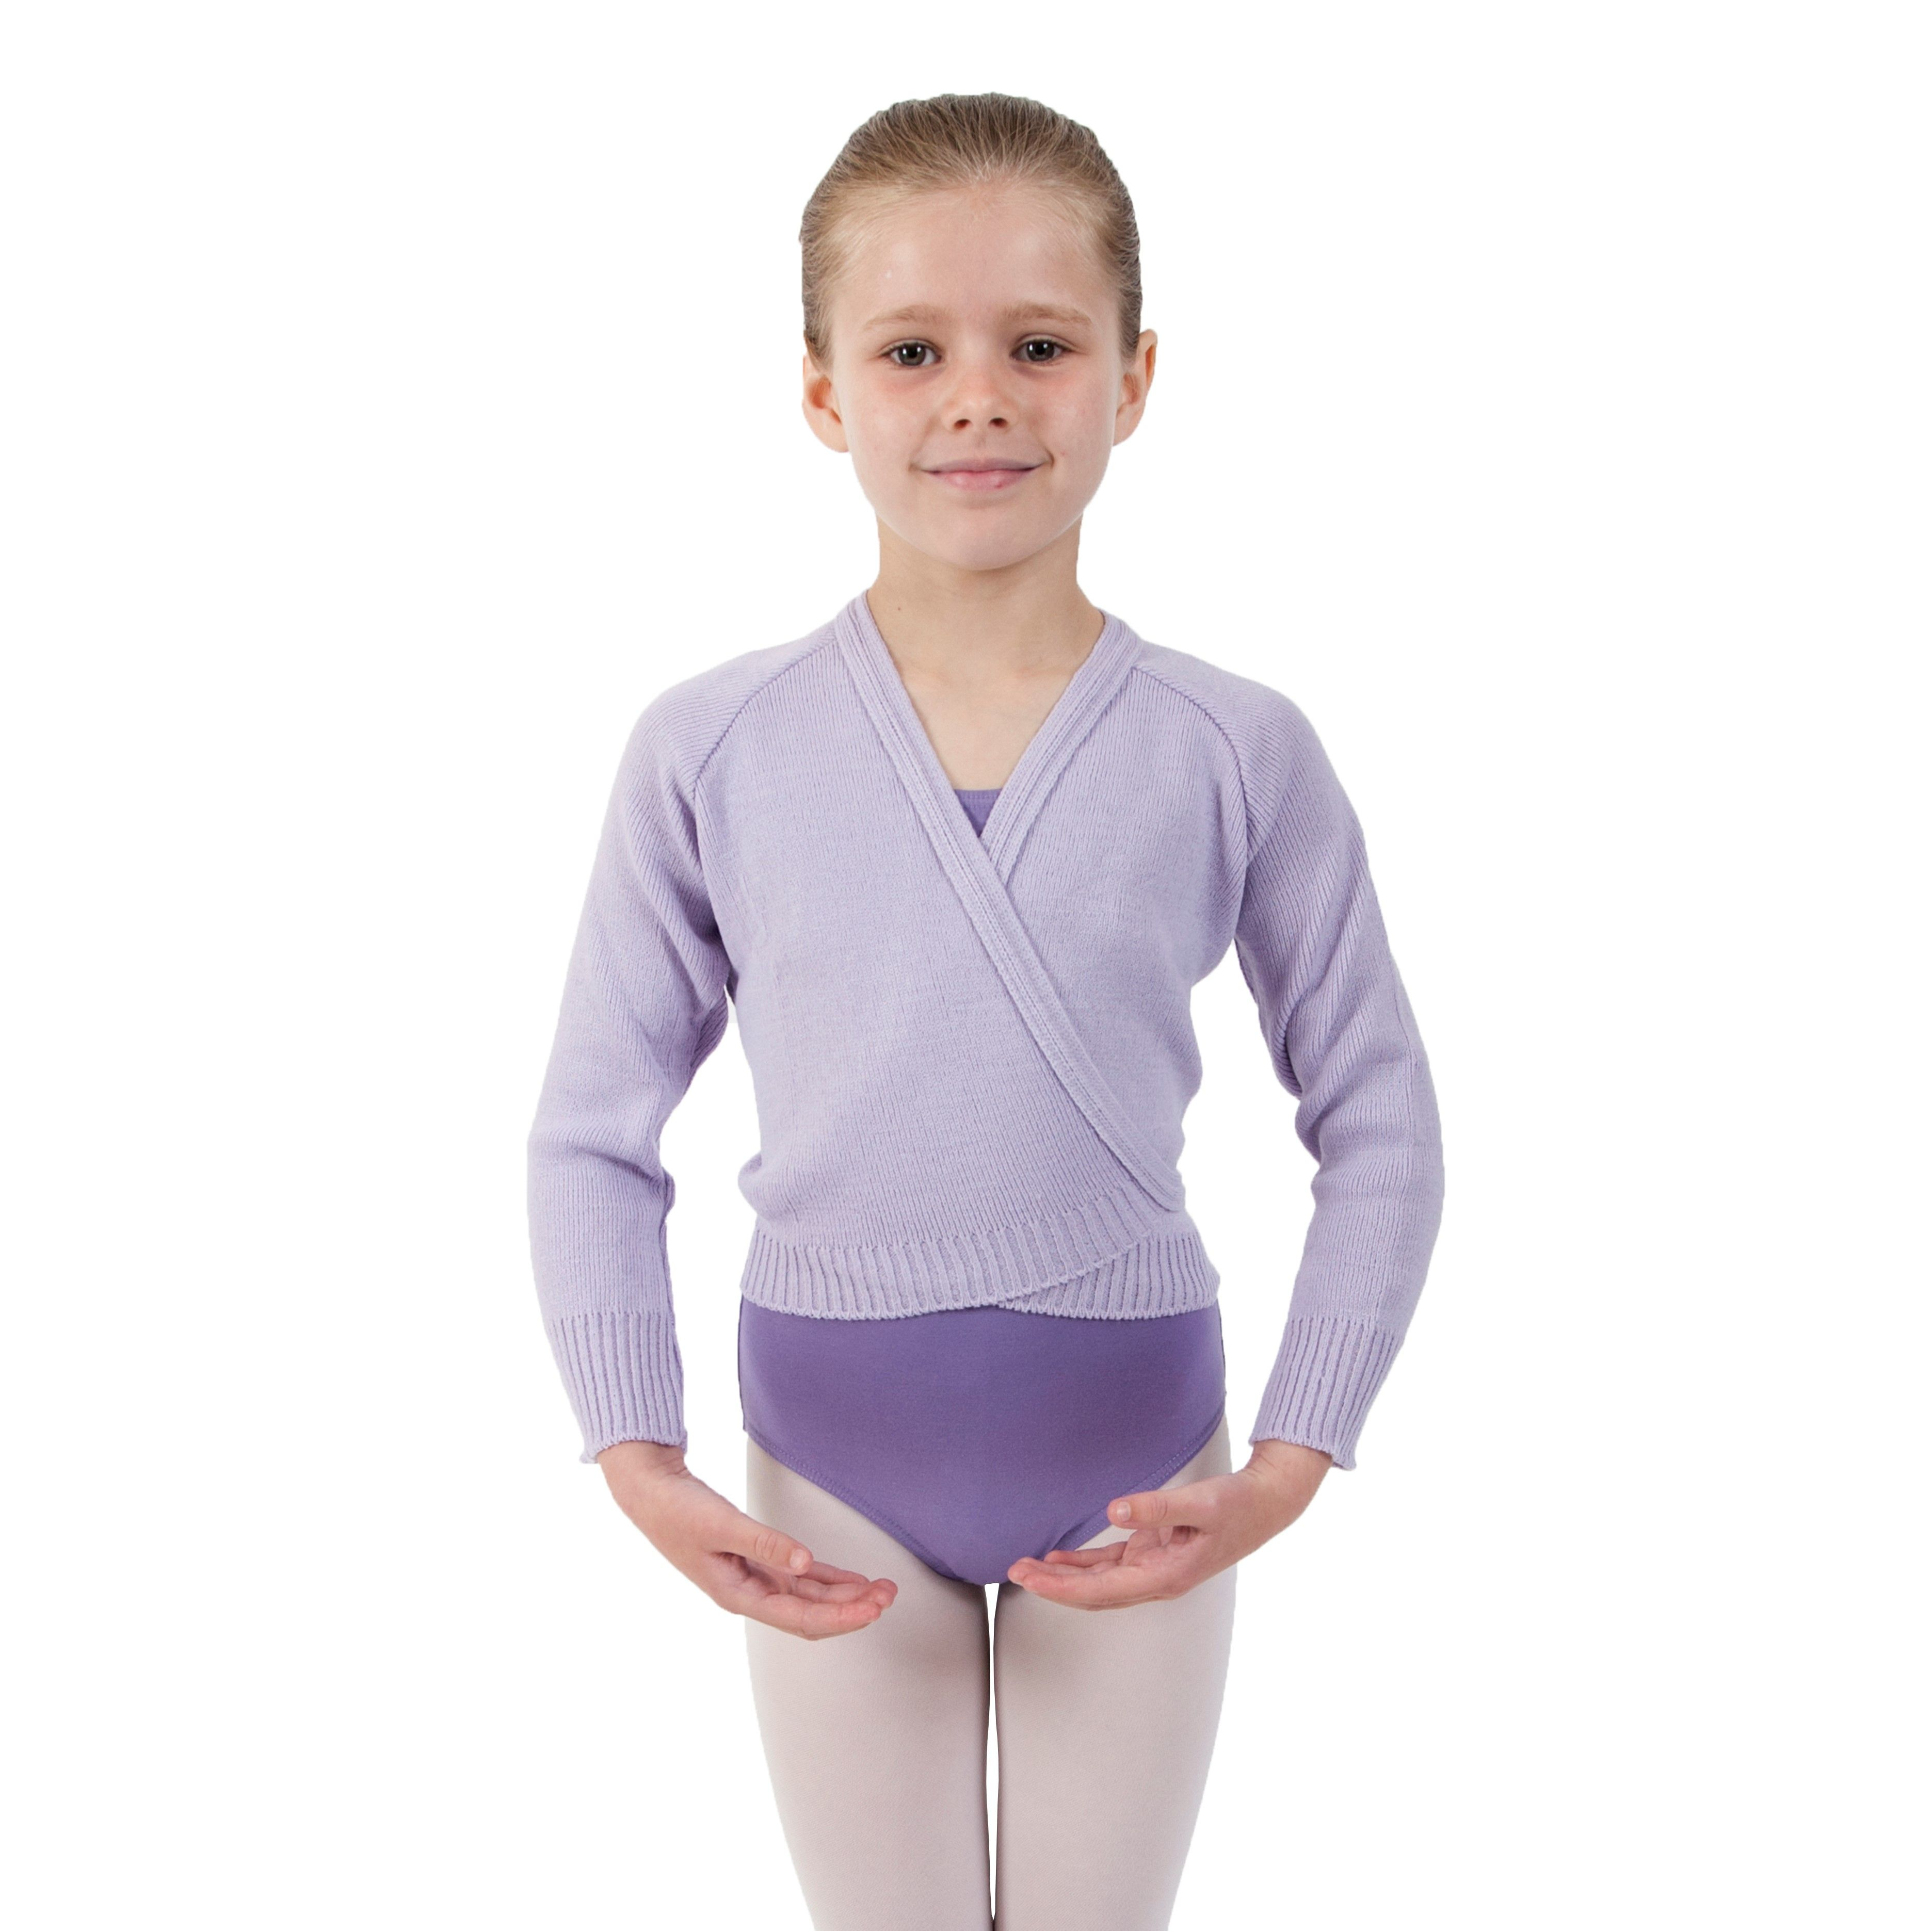 e02fbf480f8698 Girls Lilac Ballet Cardigan Crossover Knitted Wrap